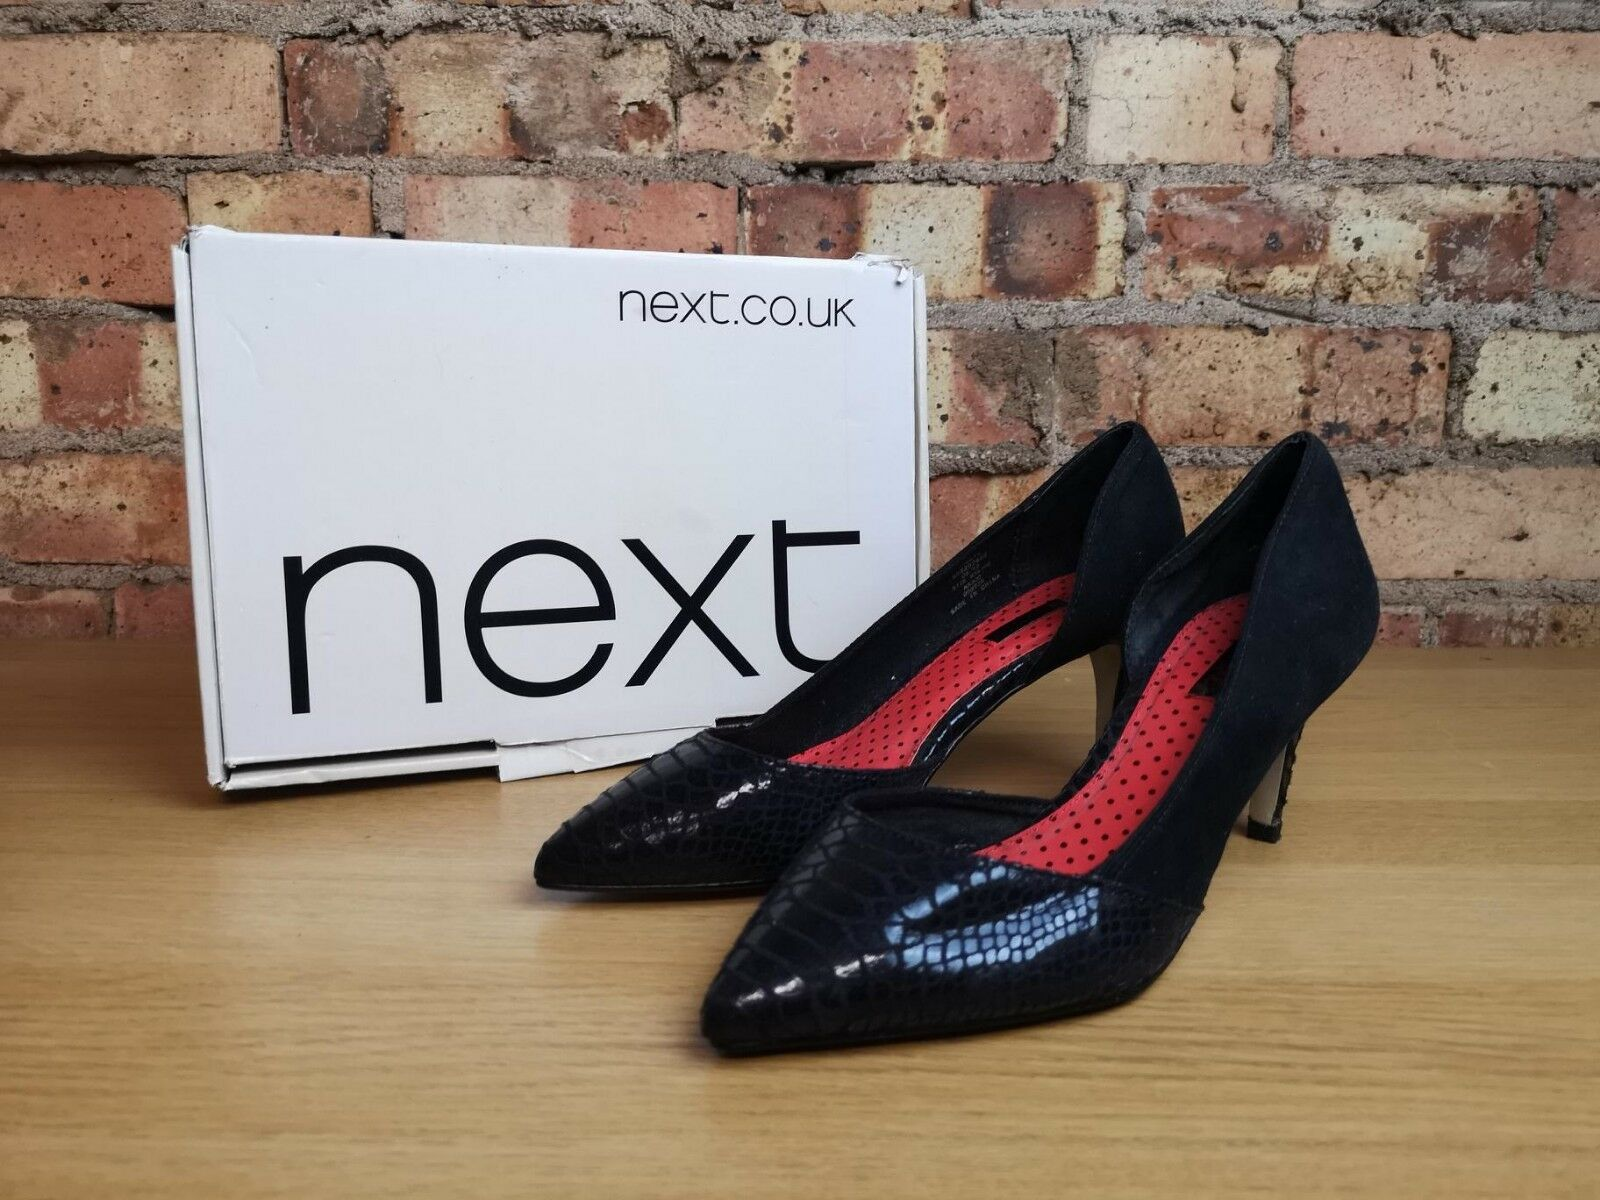 NEXT Womens Black Suede Faux Snakeskin Cut Out Pointed Toe shoes Size 6.5 UK